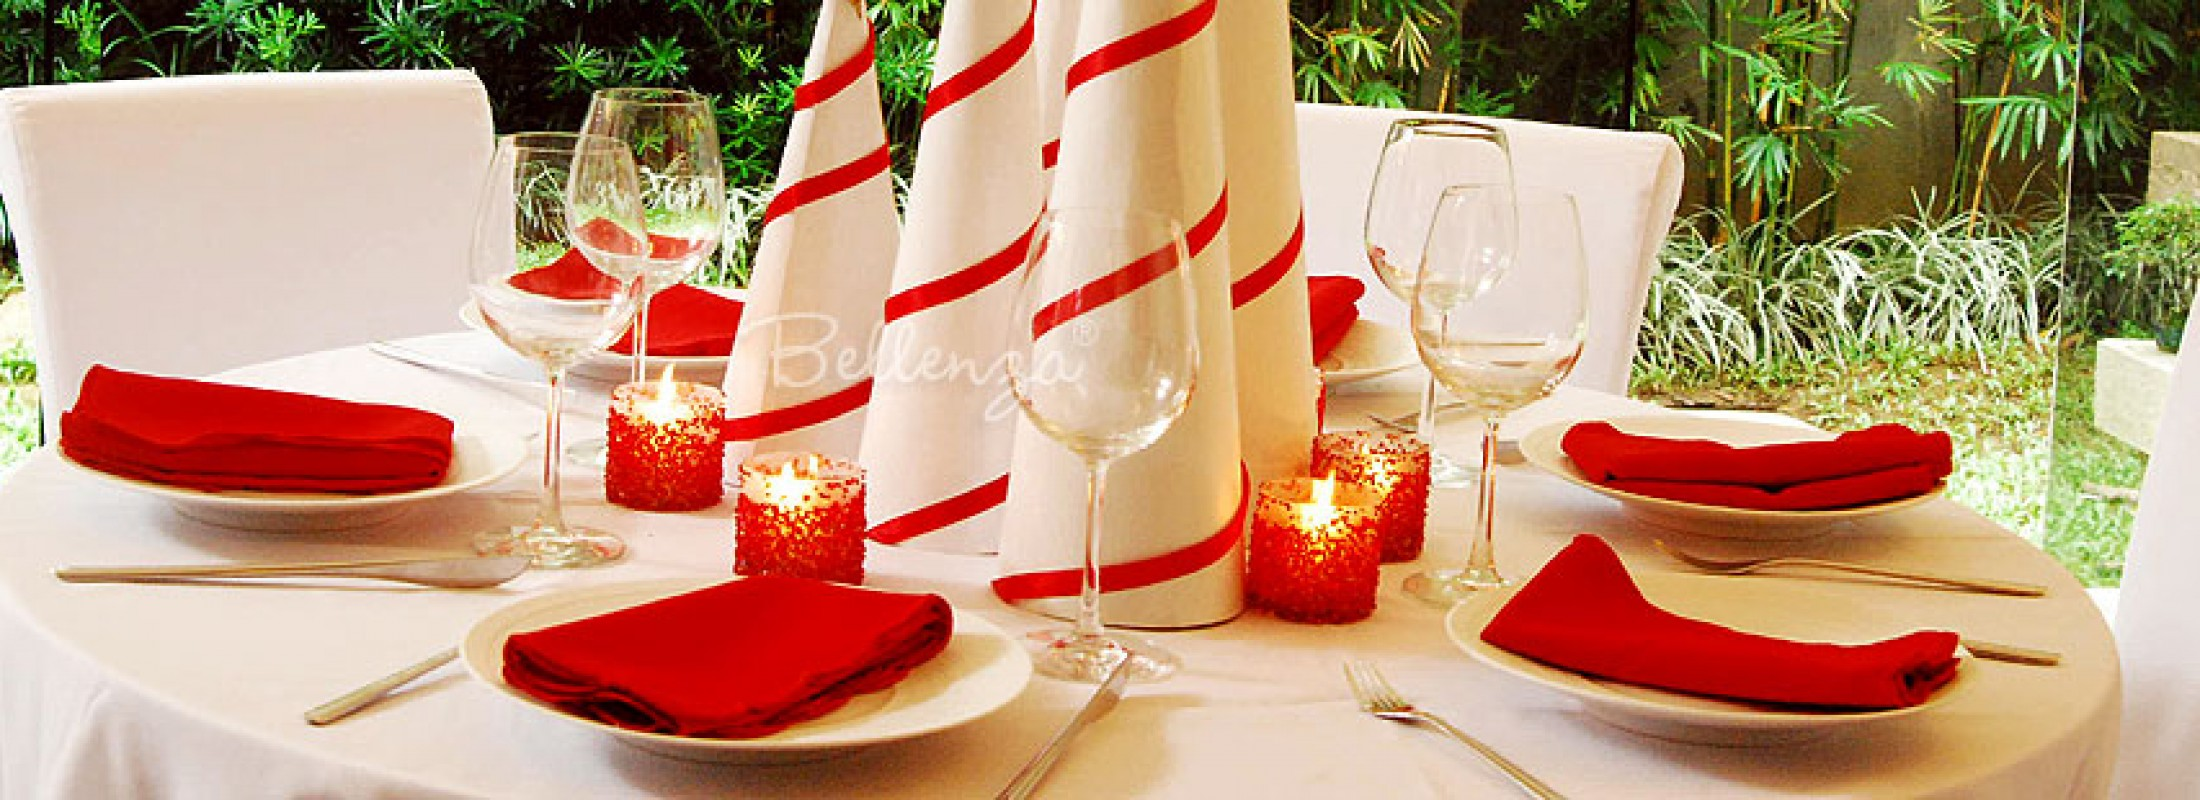 Simple Yet Festive Holiday Table Decorations